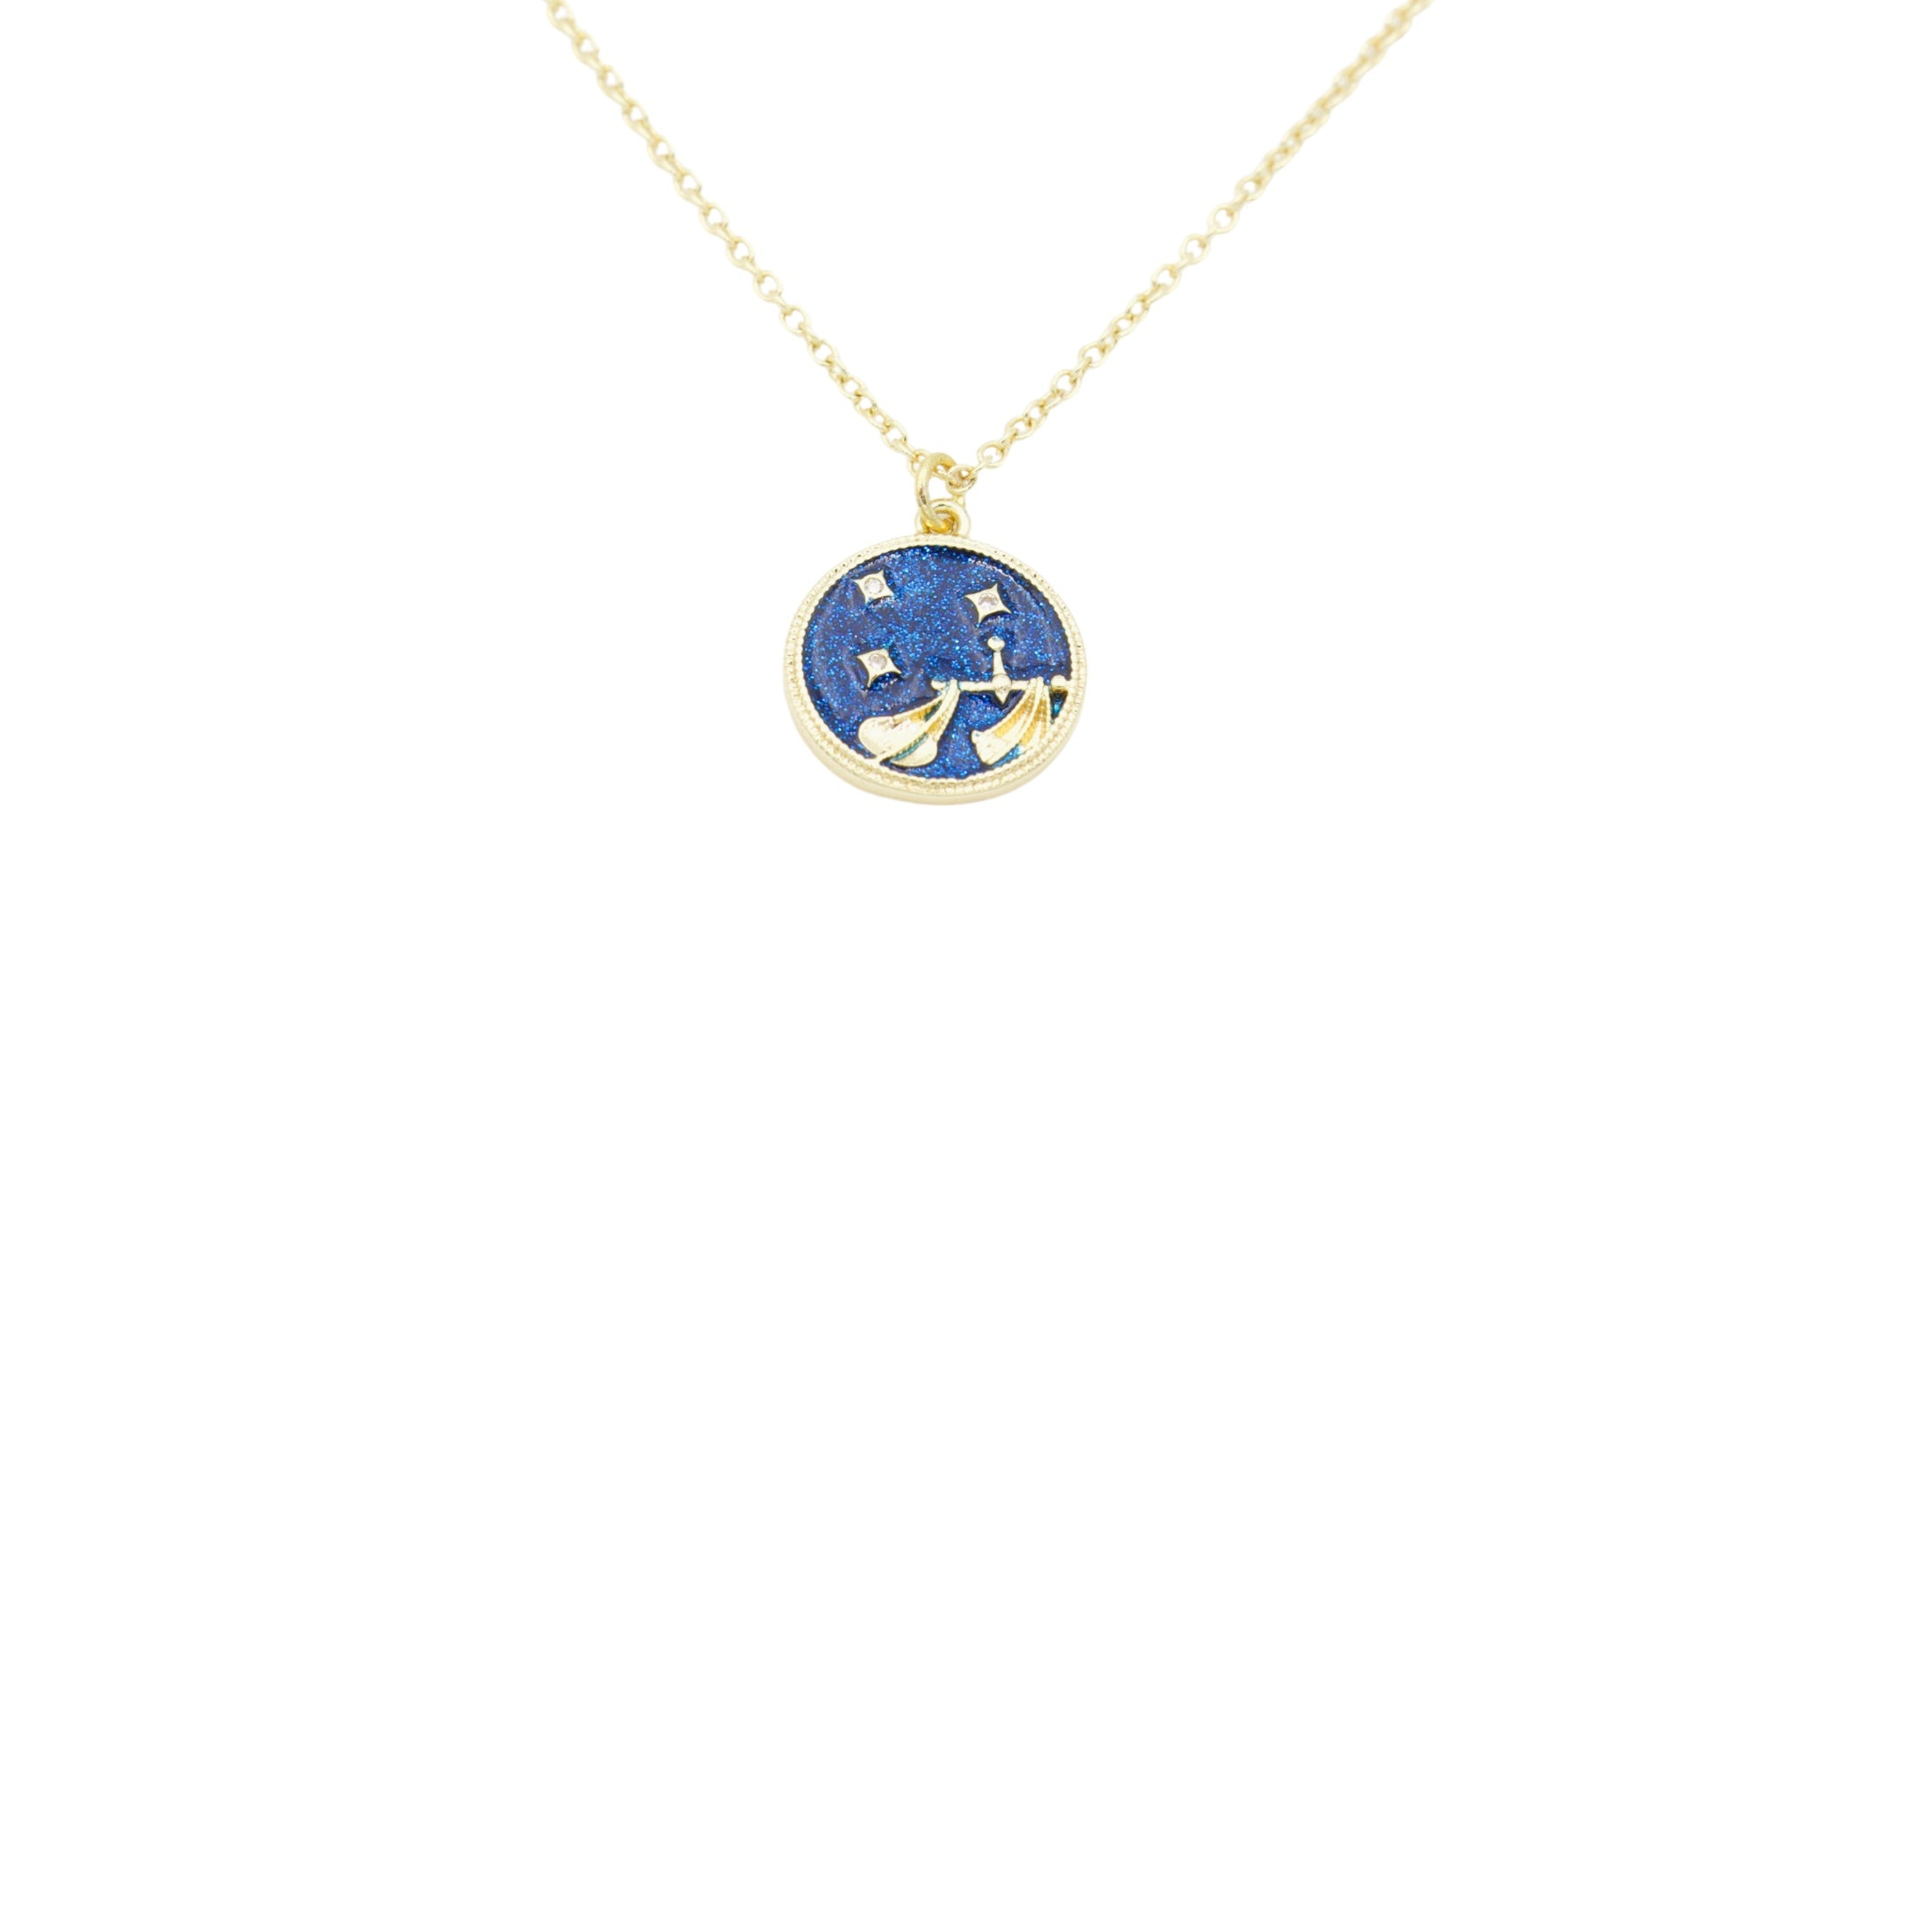 AW Boutique's Zodiac Astro Coin is a dainty pendant full of sparkle and shine.  This piece adds a pop of colour to your everyday wear and at 18 inches is a great length to mix and layer your other chains with.  Proudly wear either your own star sign or the star sign of a loved one close to your heart.  Zodiac shown is Libra.